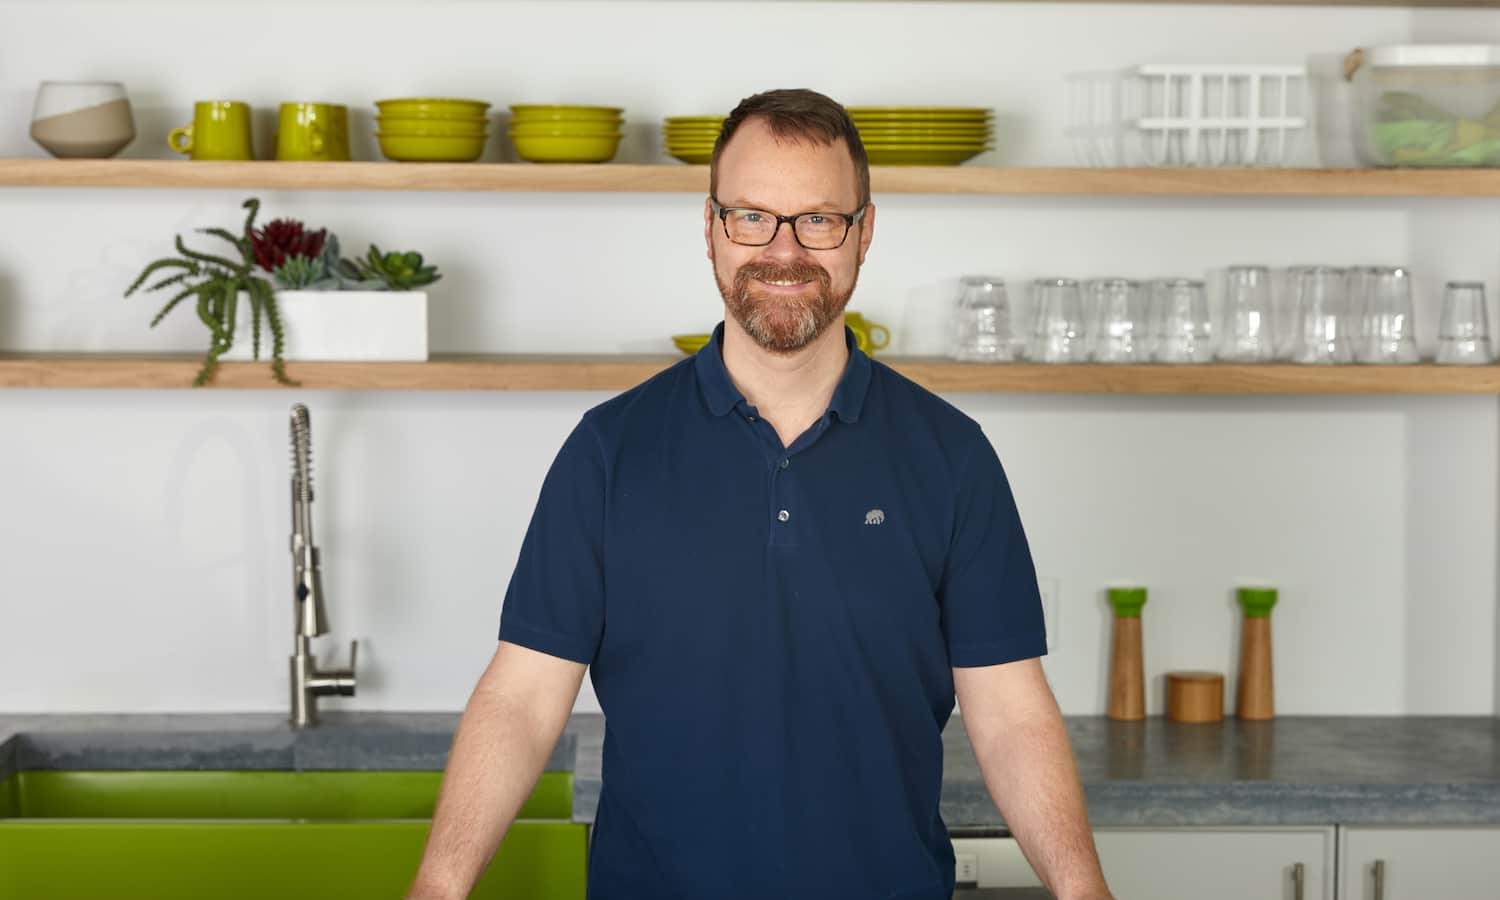 Uwe Voss, COO and Managing Director of Hello Fresh, talks about the ways meal kits transform the ways consumers approach food and the food system.